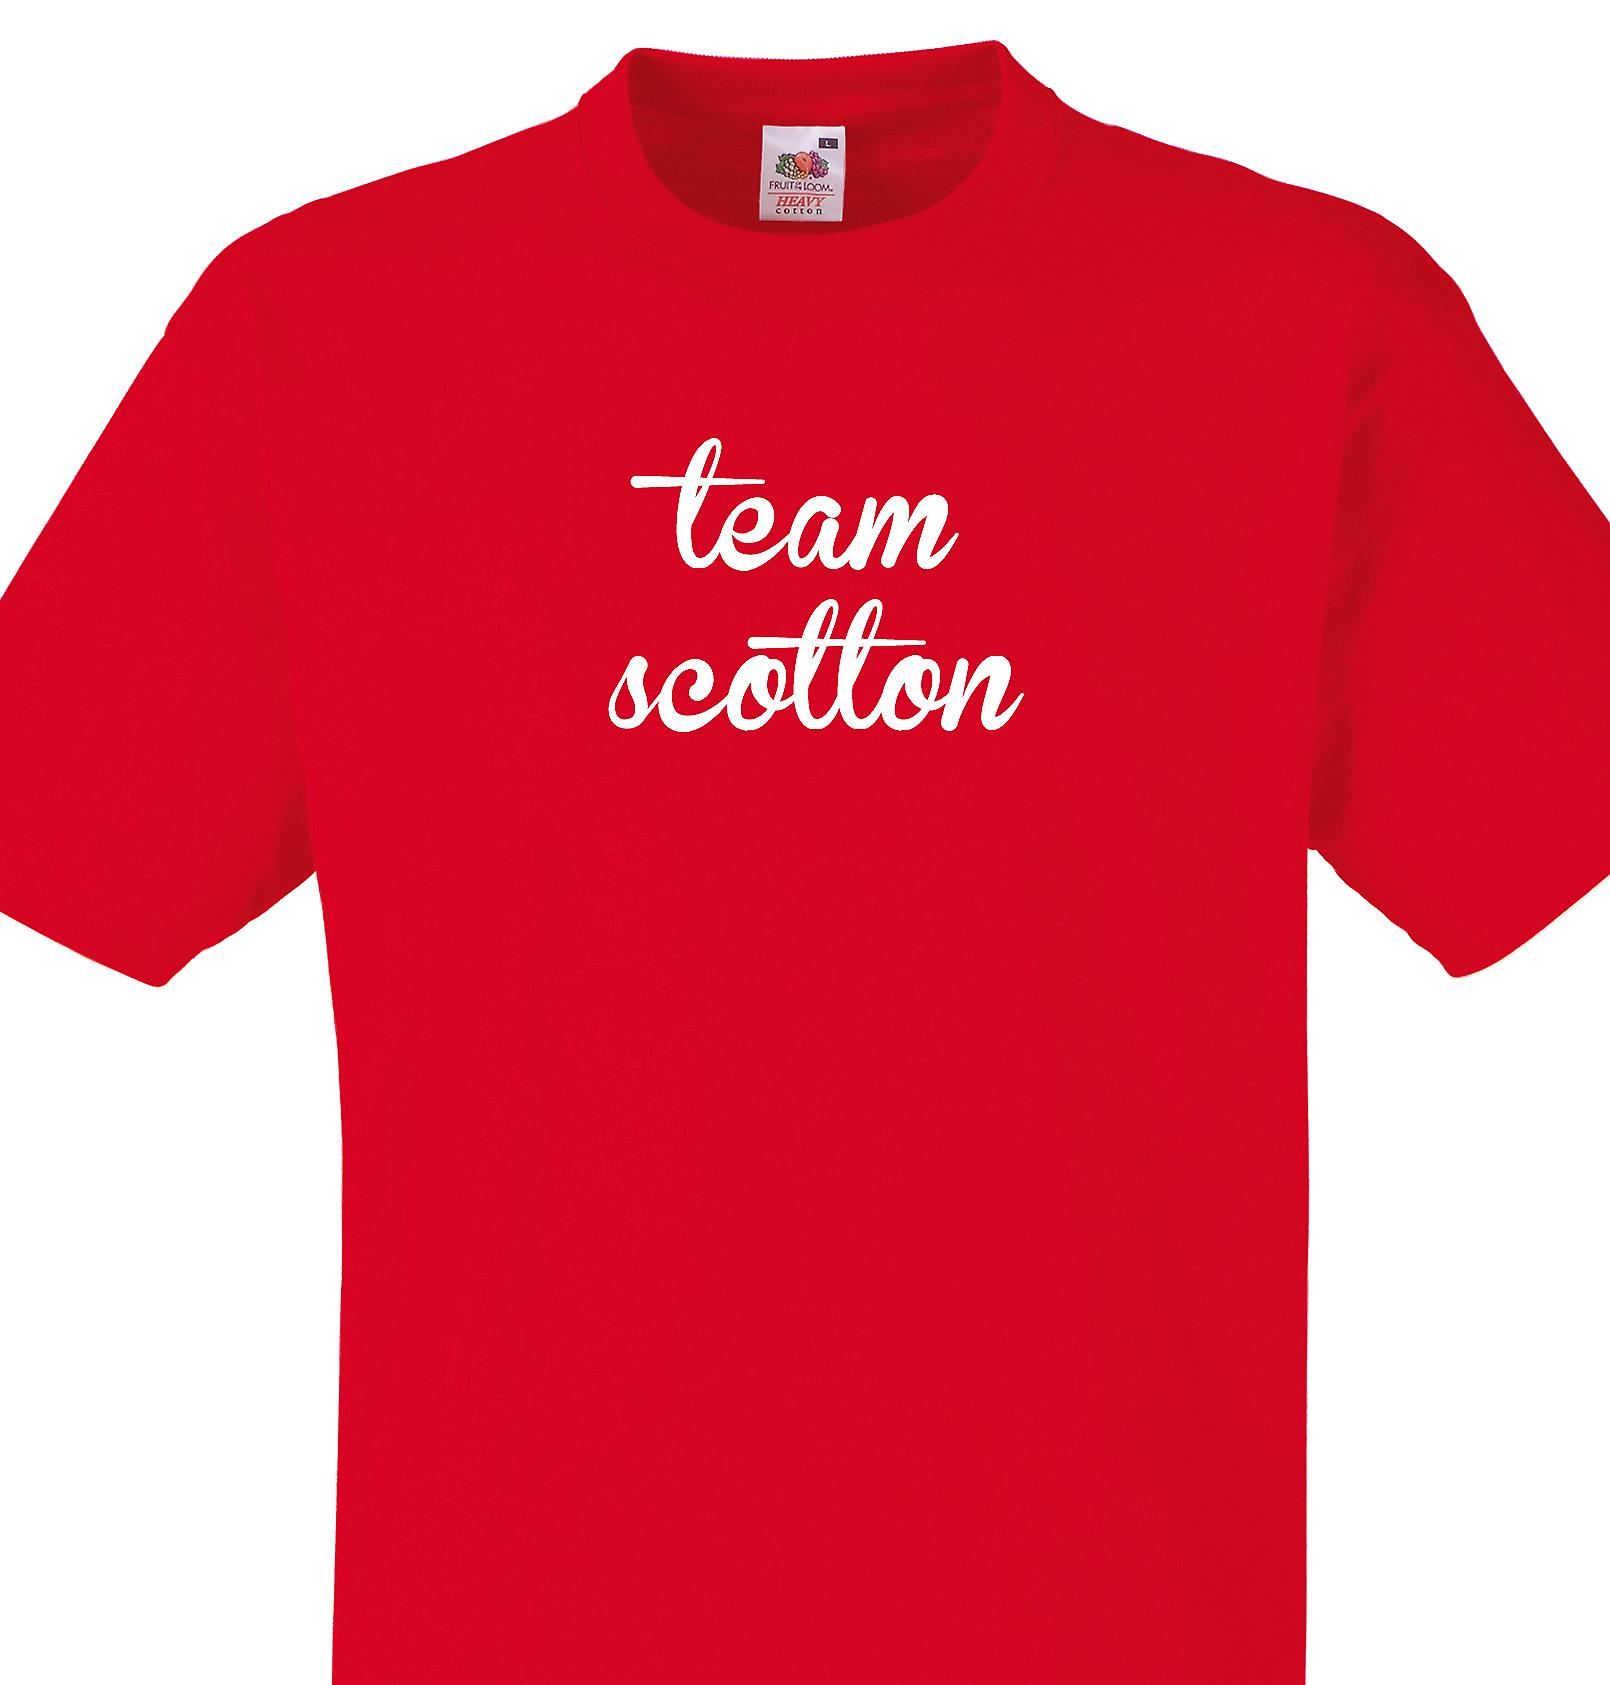 Team Scotton Red T shirt